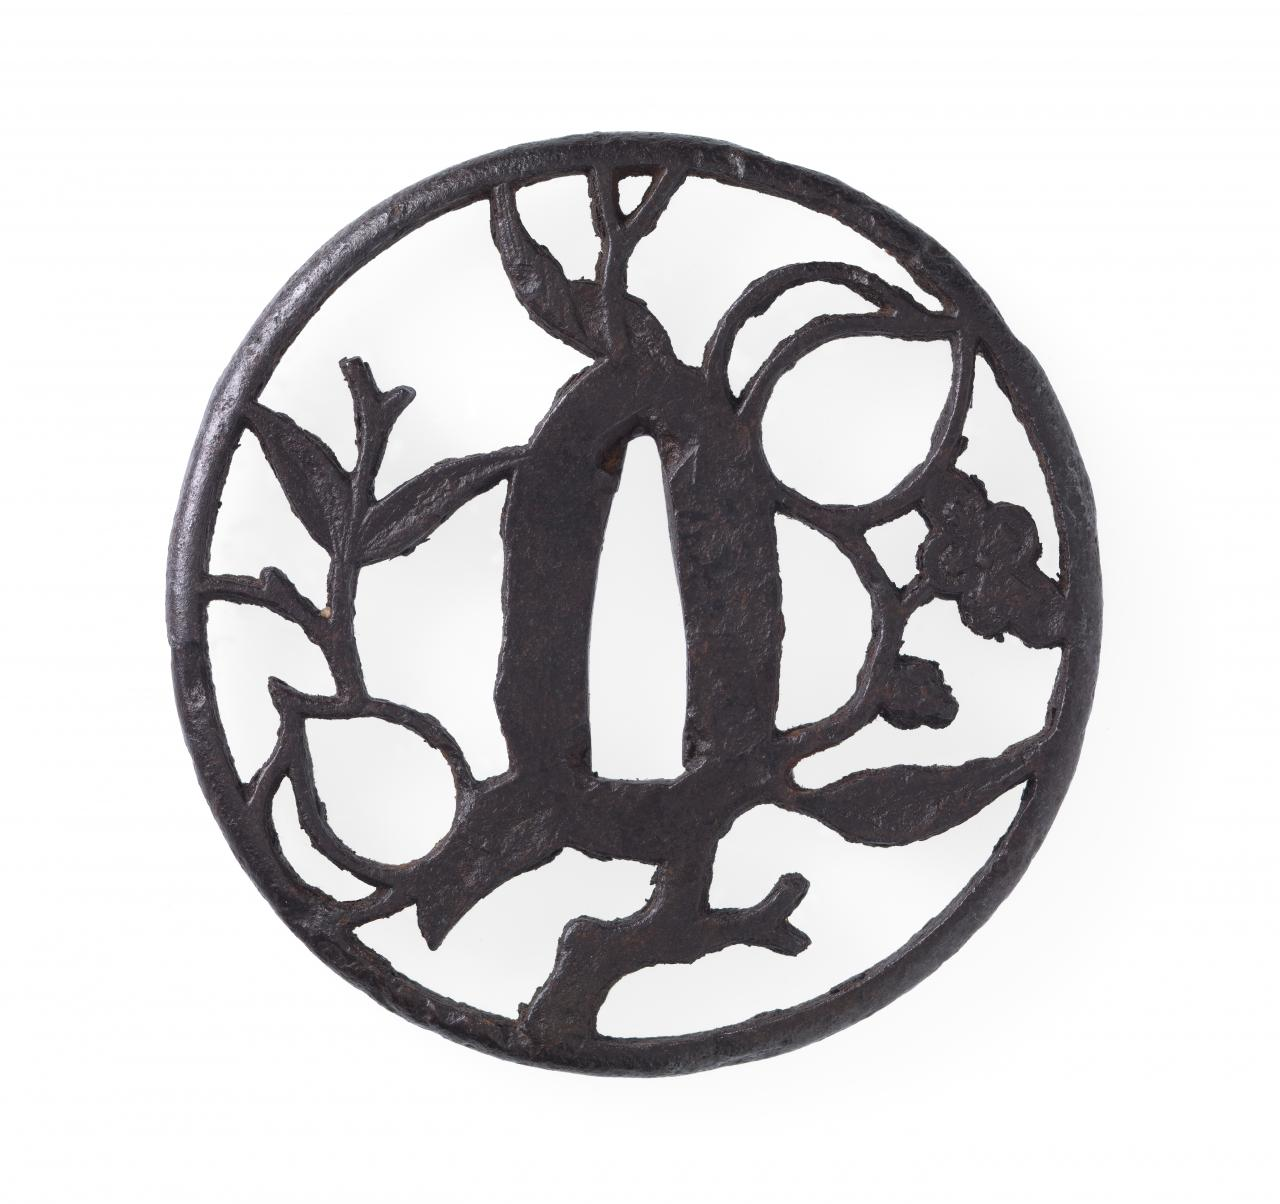 Sword guard with peach tree design